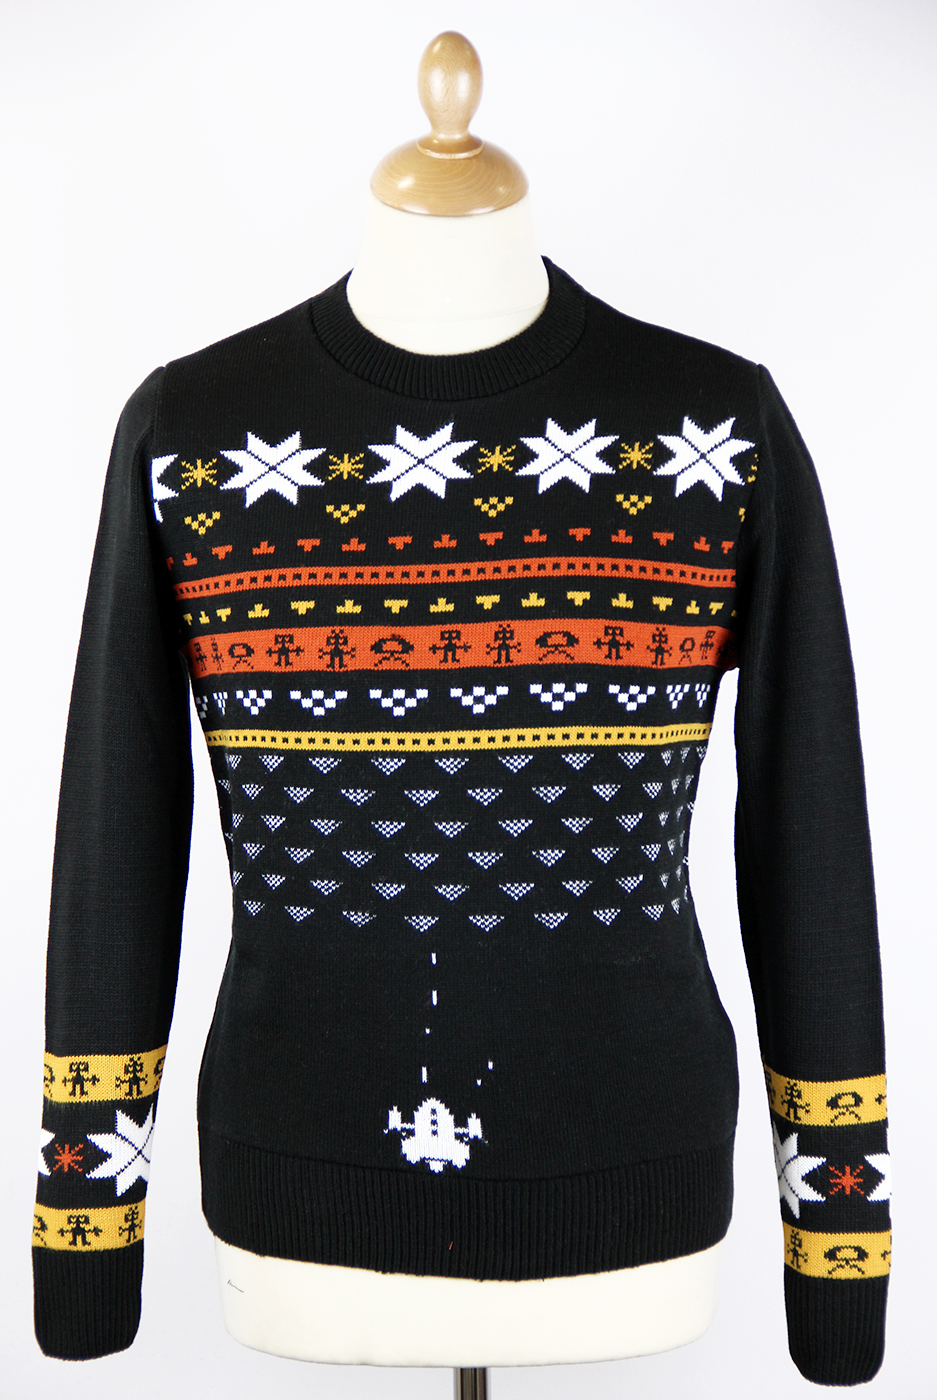 Does My Asteroid Look Good Retro Christmas Jumper